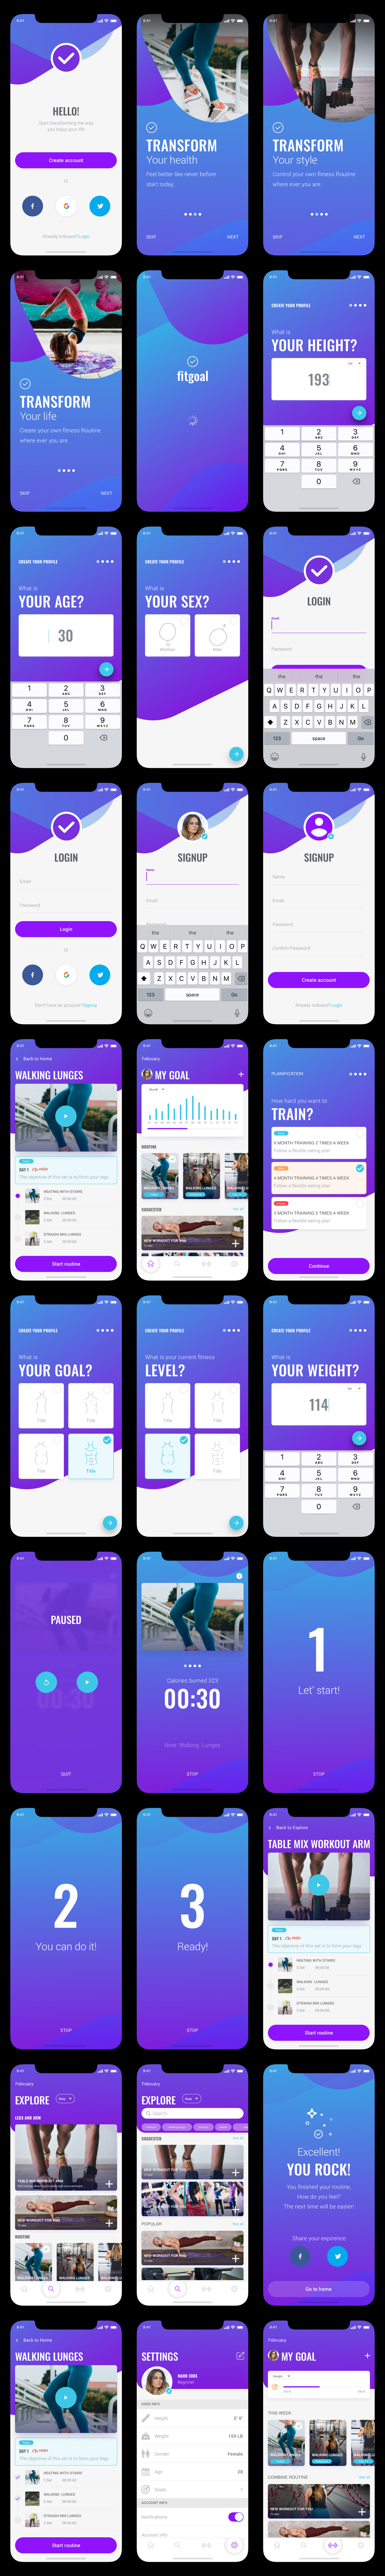 fitgoal UI Kit - Stretch your limits with the fitgoal UI Kit by InVision. Includes 30 Screens, 179 Components, and 26 Fitness Icons.